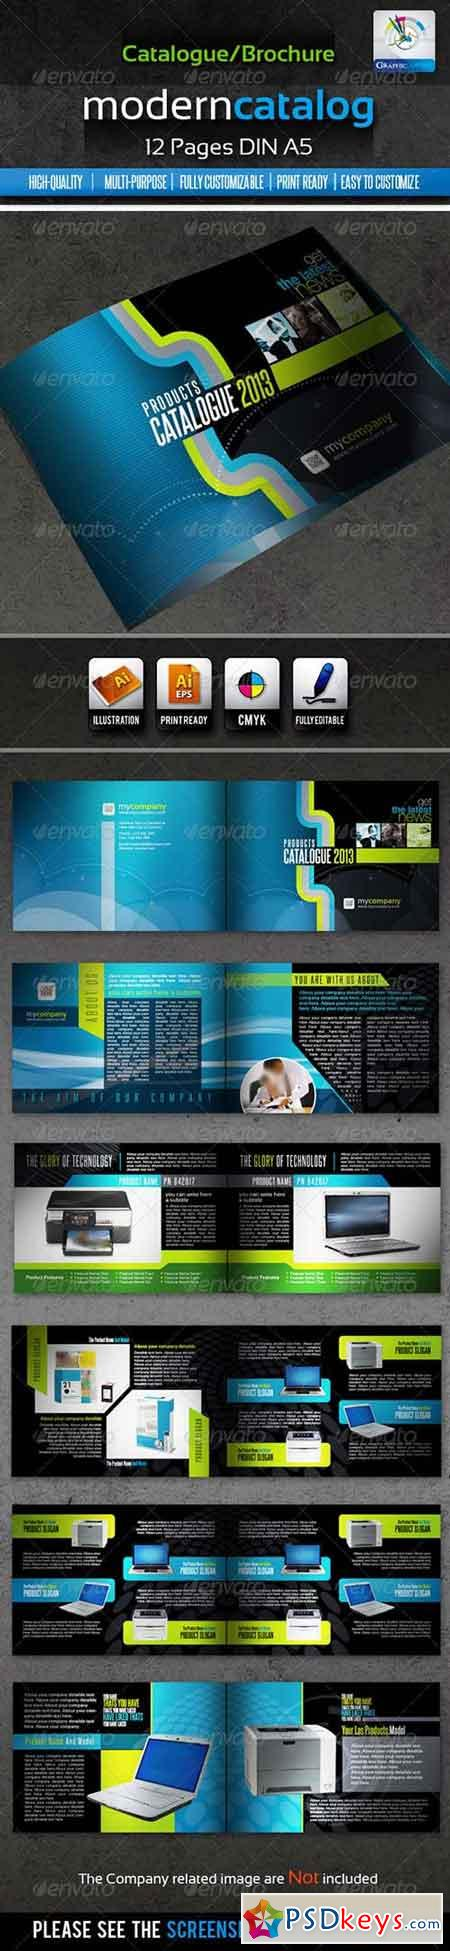 Corporate Modern Product Catalogue Brochure 12page 1632575